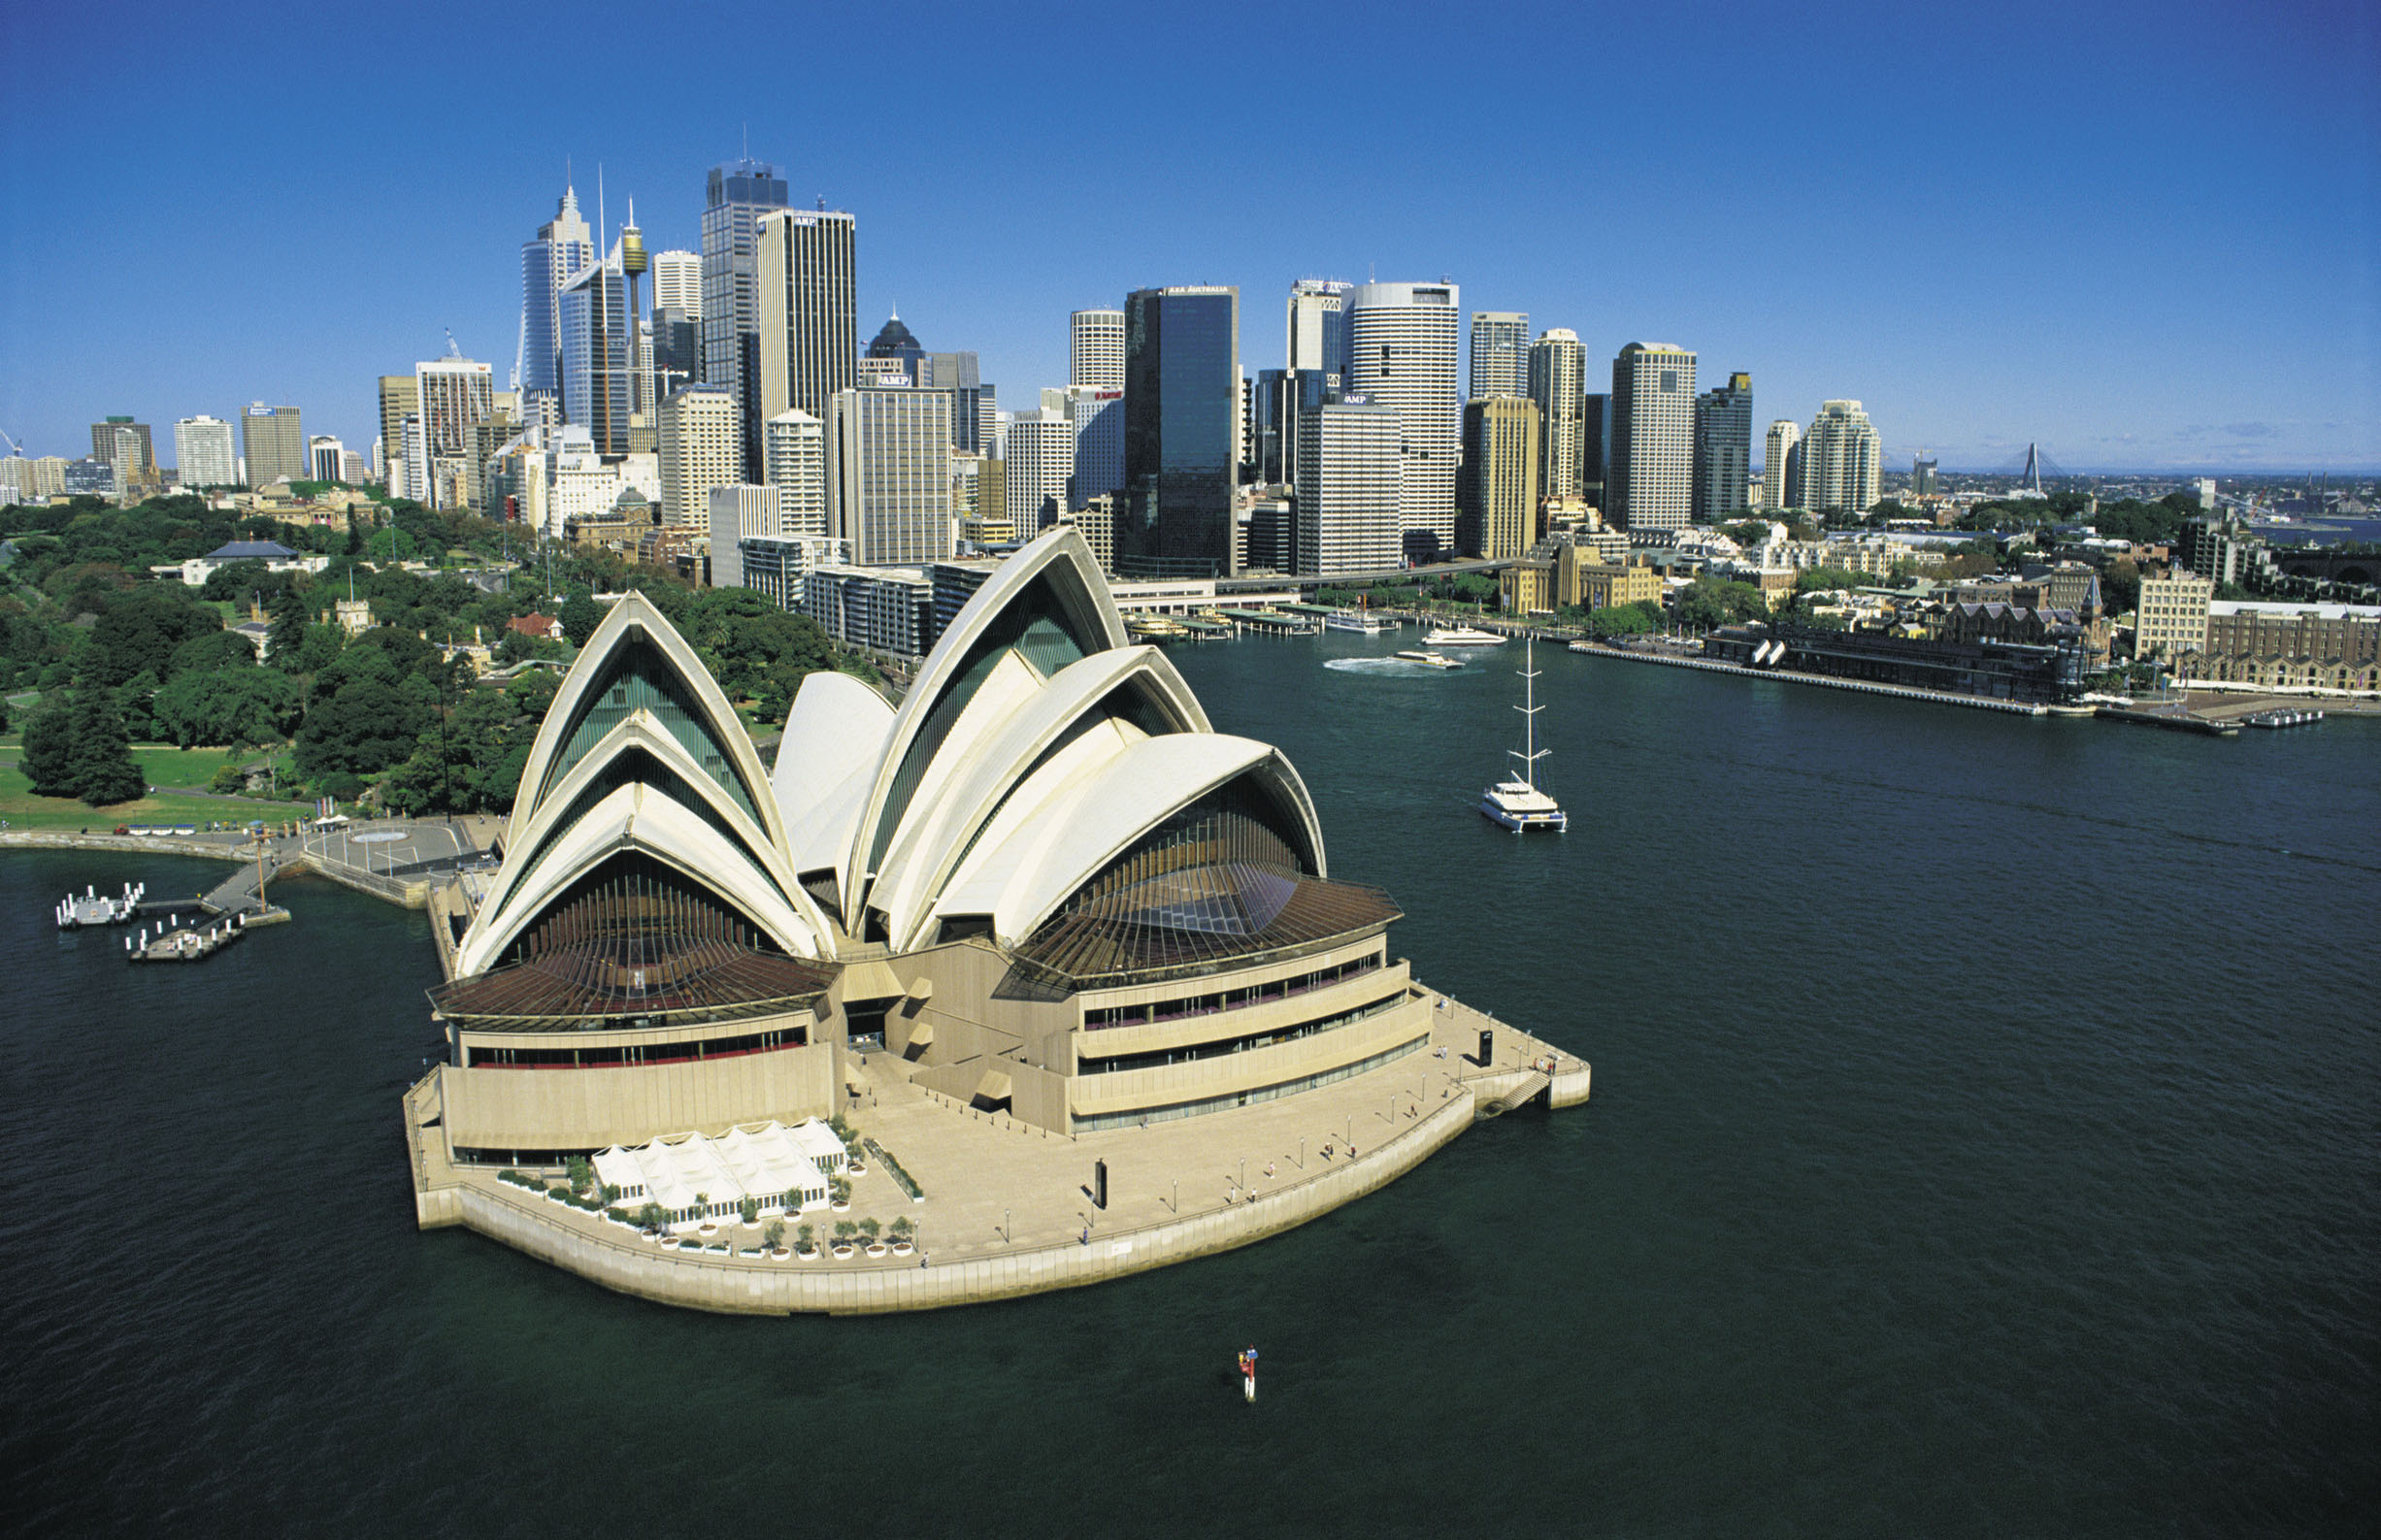 964 UTS photo - Sydney Opera House and Sydney city